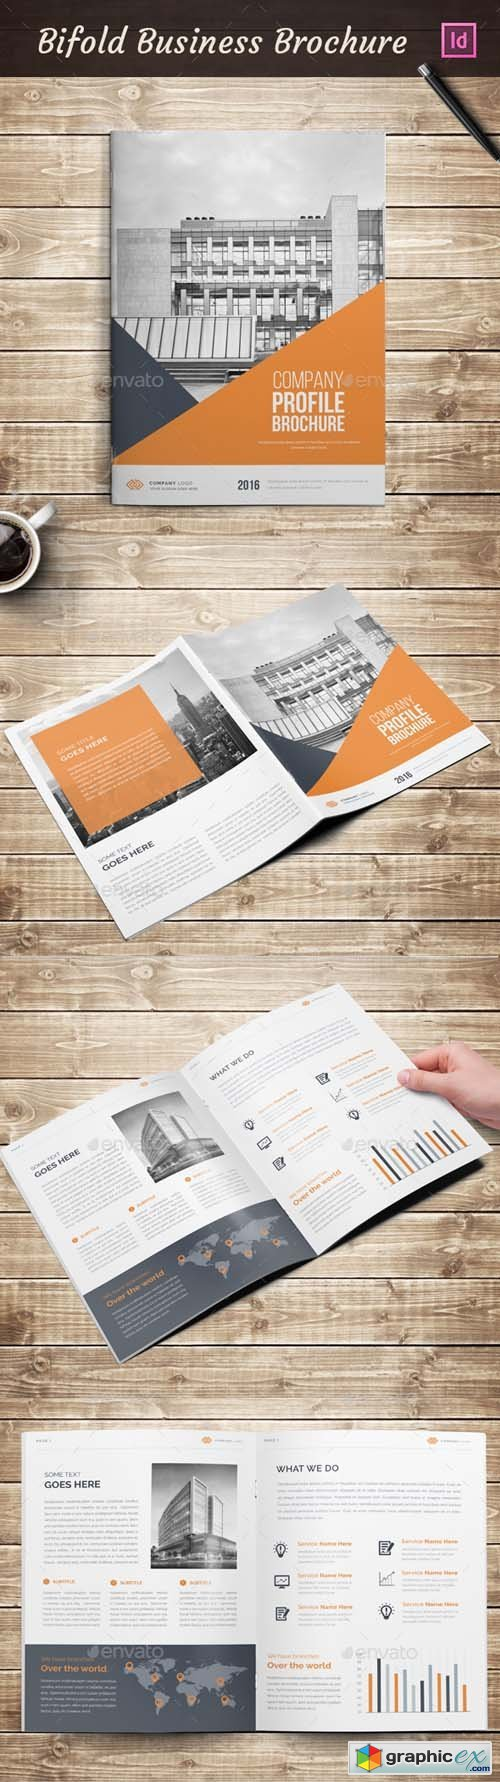 Bifold Corporate Brochure 02